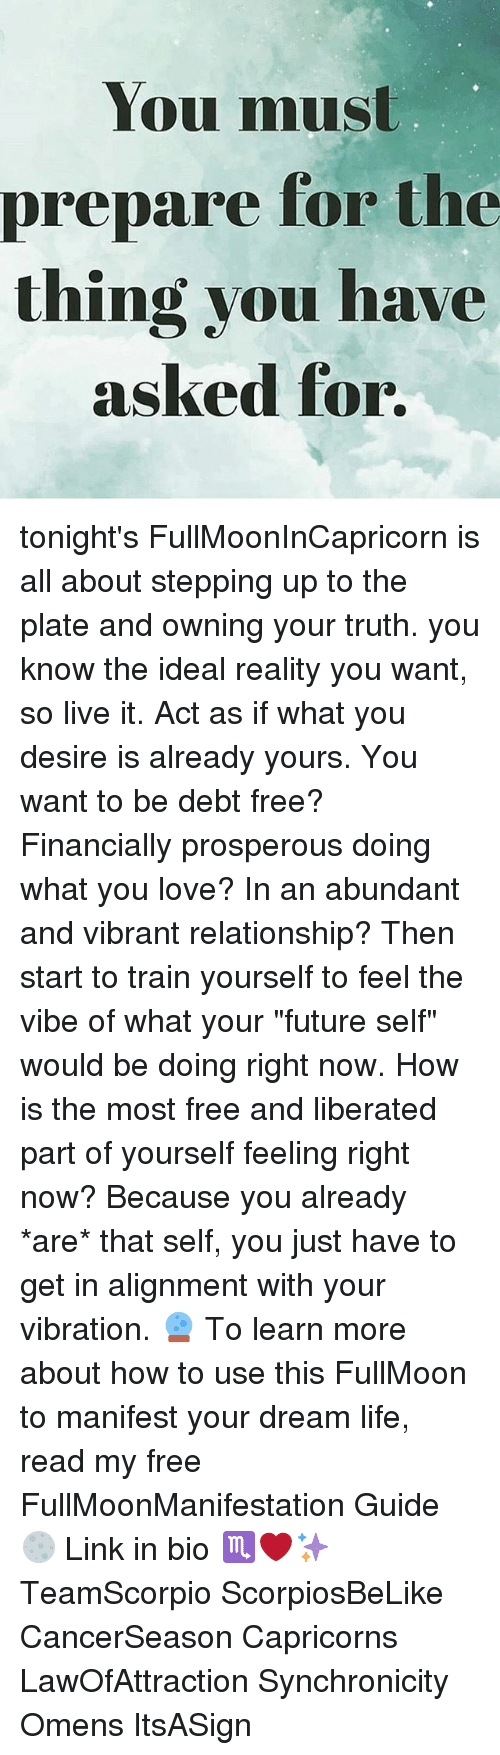 """Future, Life, and Love: You must  prepare for the  thing you have  asked for tonight's FullMoonInCapricorn is all about stepping up to the plate and owning your truth. you know the ideal reality you want, so live it. Act as if what you desire is already yours. You want to be debt free? Financially prosperous doing what you love? In an abundant and vibrant relationship? Then start to train yourself to feel the vibe of what your """"future self"""" would be doing right now. How is the most free and liberated part of yourself feeling right now? Because you already *are* that self, you just have to get in alignment with your vibration. 🔮 To learn more about how to use this FullMoon to manifest your dream life, read my free FullMoonManifestation Guide 🌕 Link in bio ♏️❤️✨ TeamScorpio ScorpiosBeLike CancerSeason Capricorns LawOfAttraction Synchronicity Omens ItsASign"""